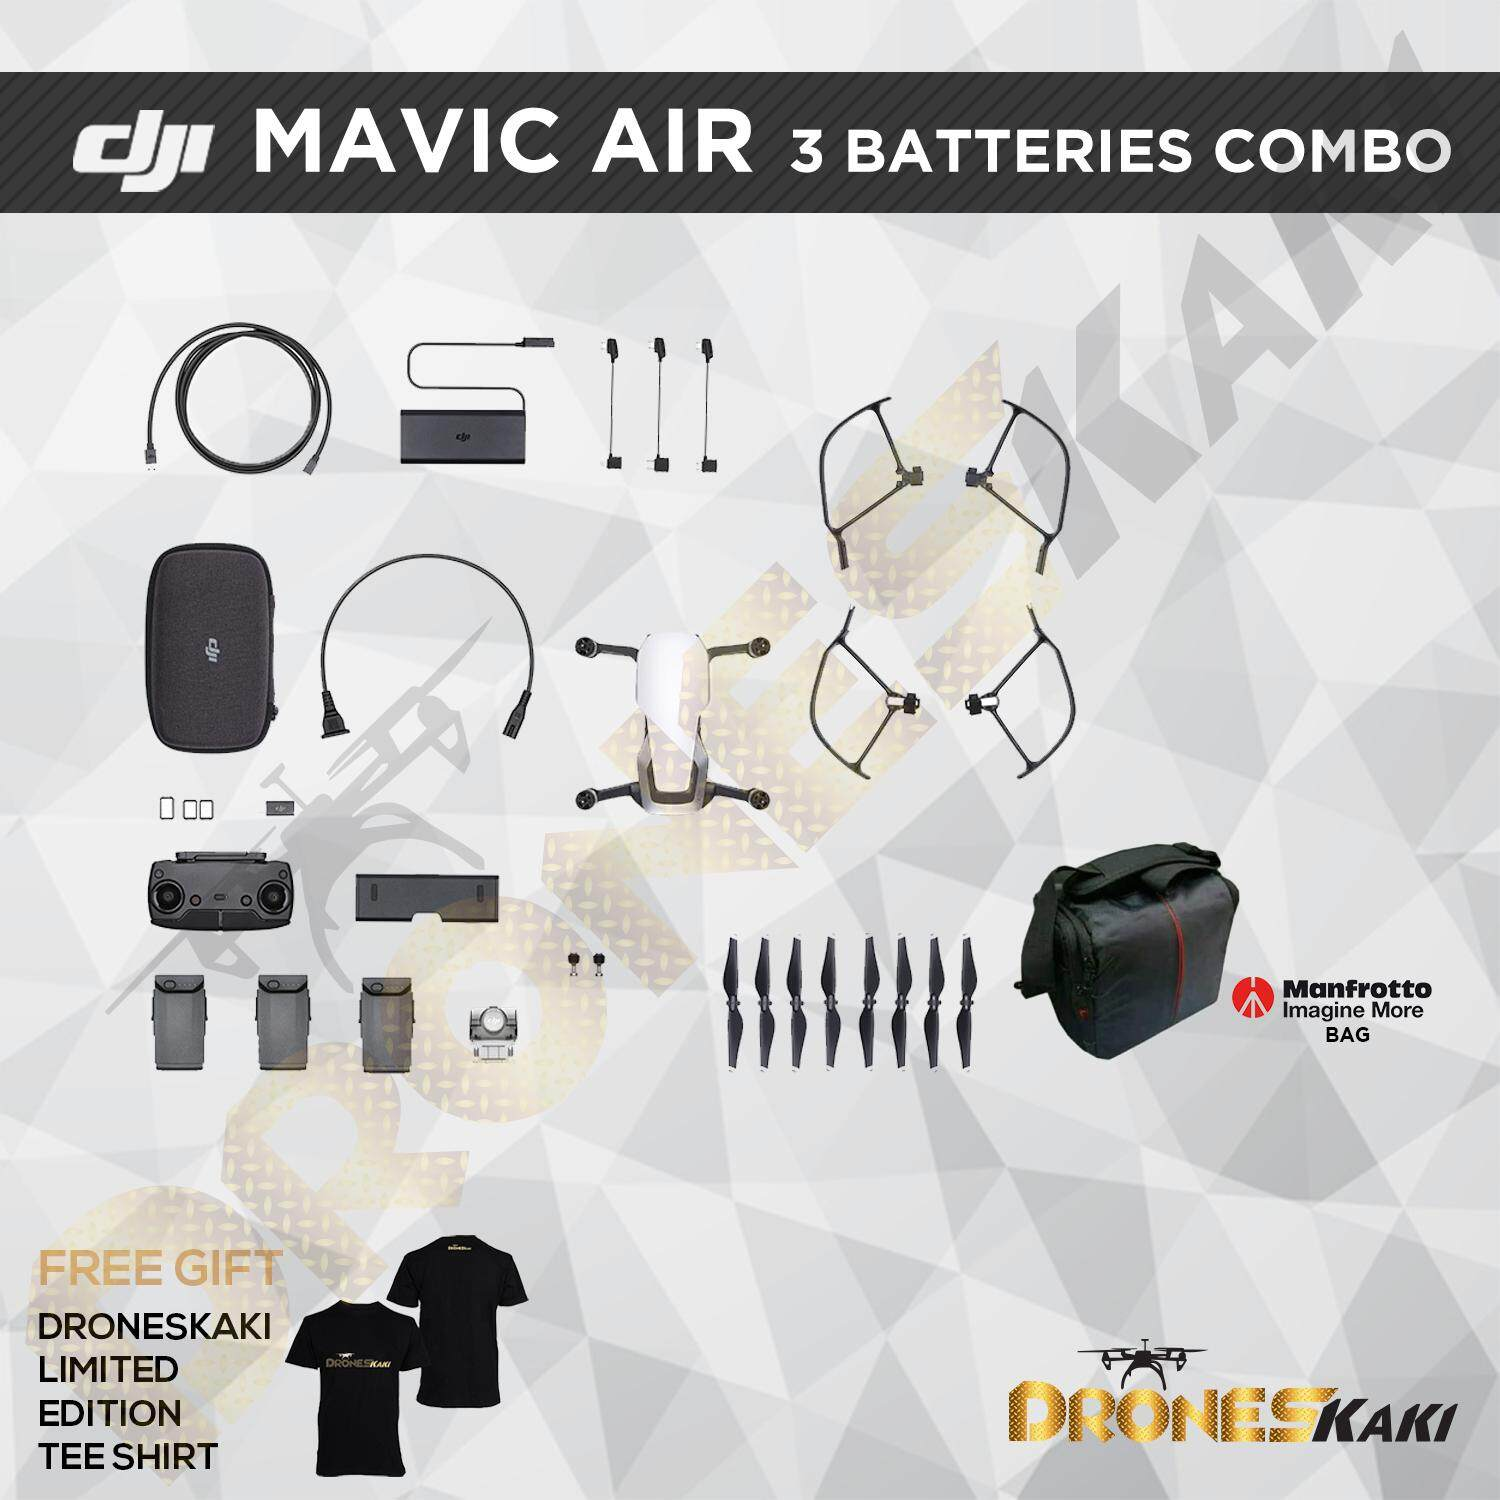 DJI Mavic Air 3 Batteries Combo (6 MONTHS EXTENDED WARRANTY ONLY AT  DRONESKAKI ONLINE STORE WORTH RM800)